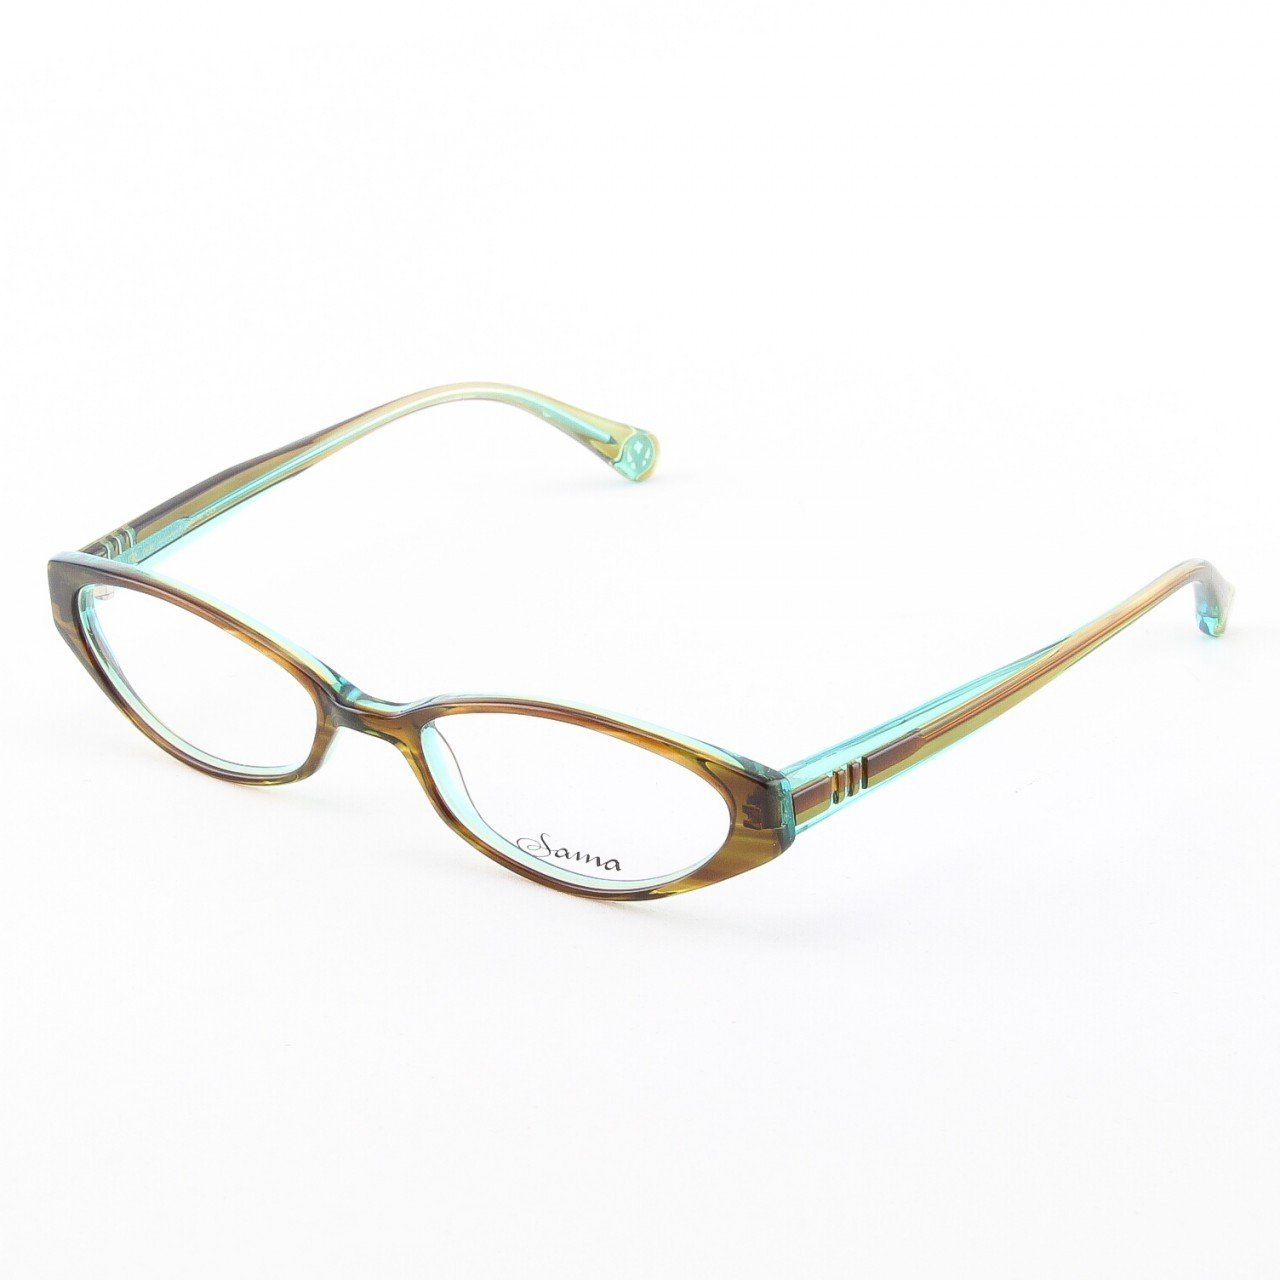 Loree Rodkin Demi Eyeglasses by Sama Col. Olive with Clear Lenses